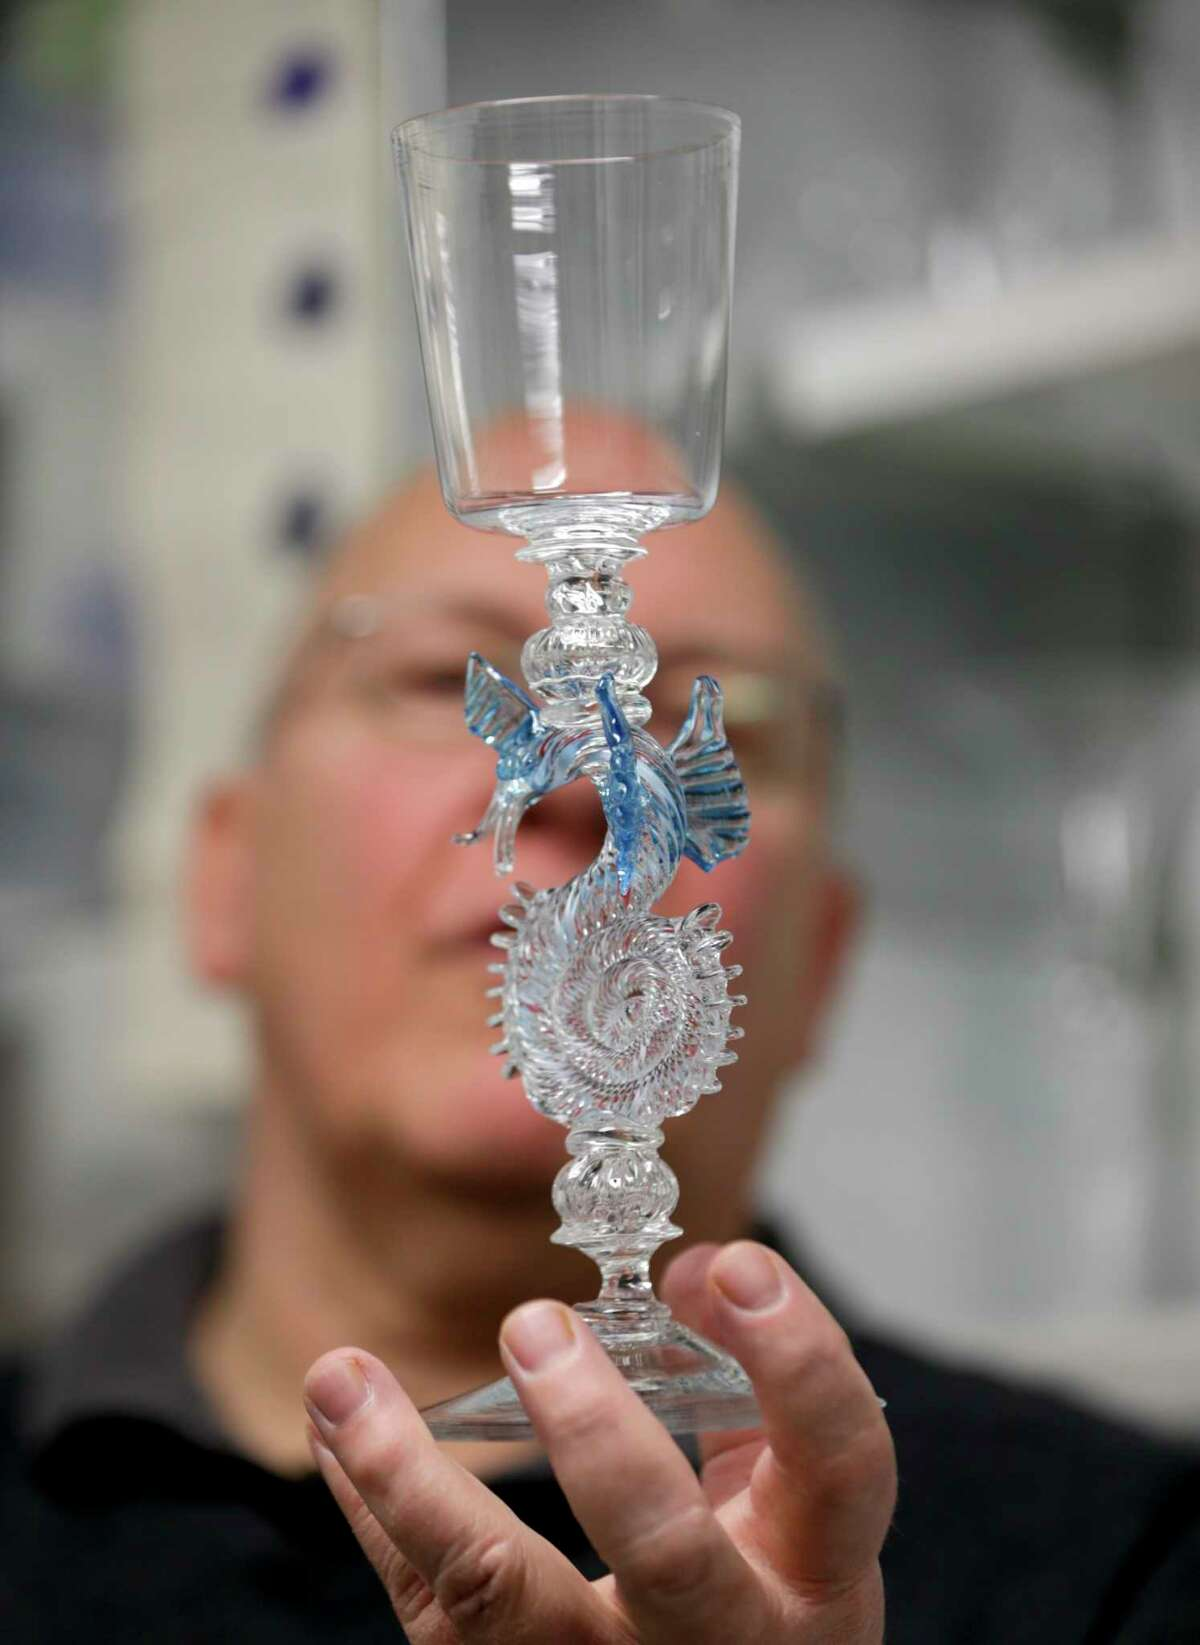 In this Friday, Jan. 22, 2016 photo, glassblower William Gudenrath holds a dragon-stem goblet at the Corning Museum of Glass in Corning, N.Y.. Gudenrath spent decades researching how Renaissance-era glassmakers produced objects that are now considered works of art.